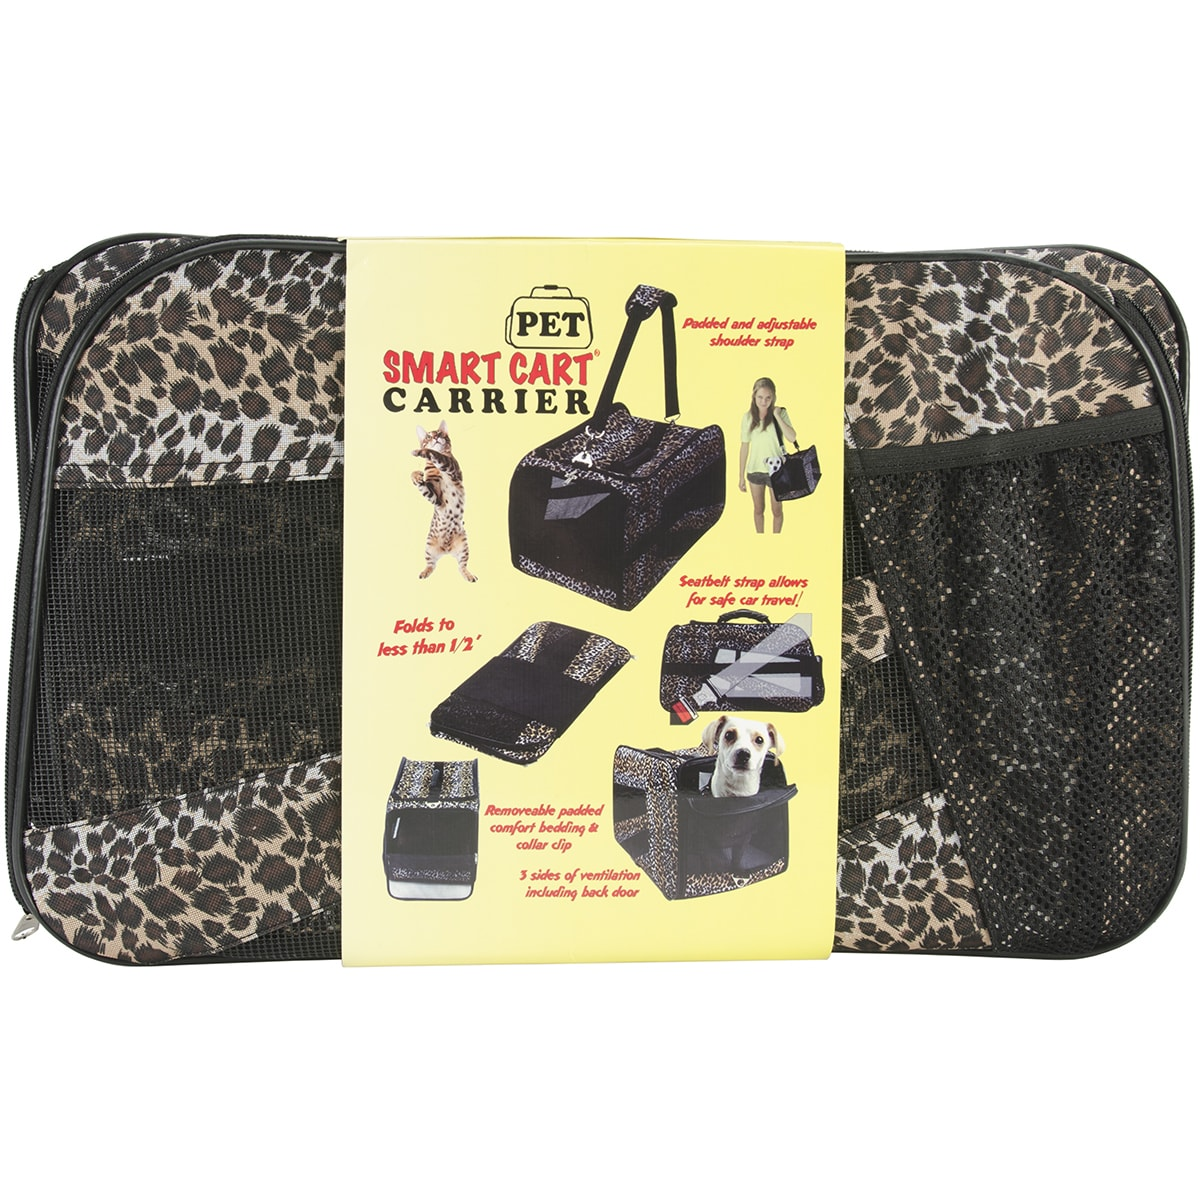 "dbEST Pet Smart Cart Carrier -Medium 20""X4""X11""-Leopard (..."